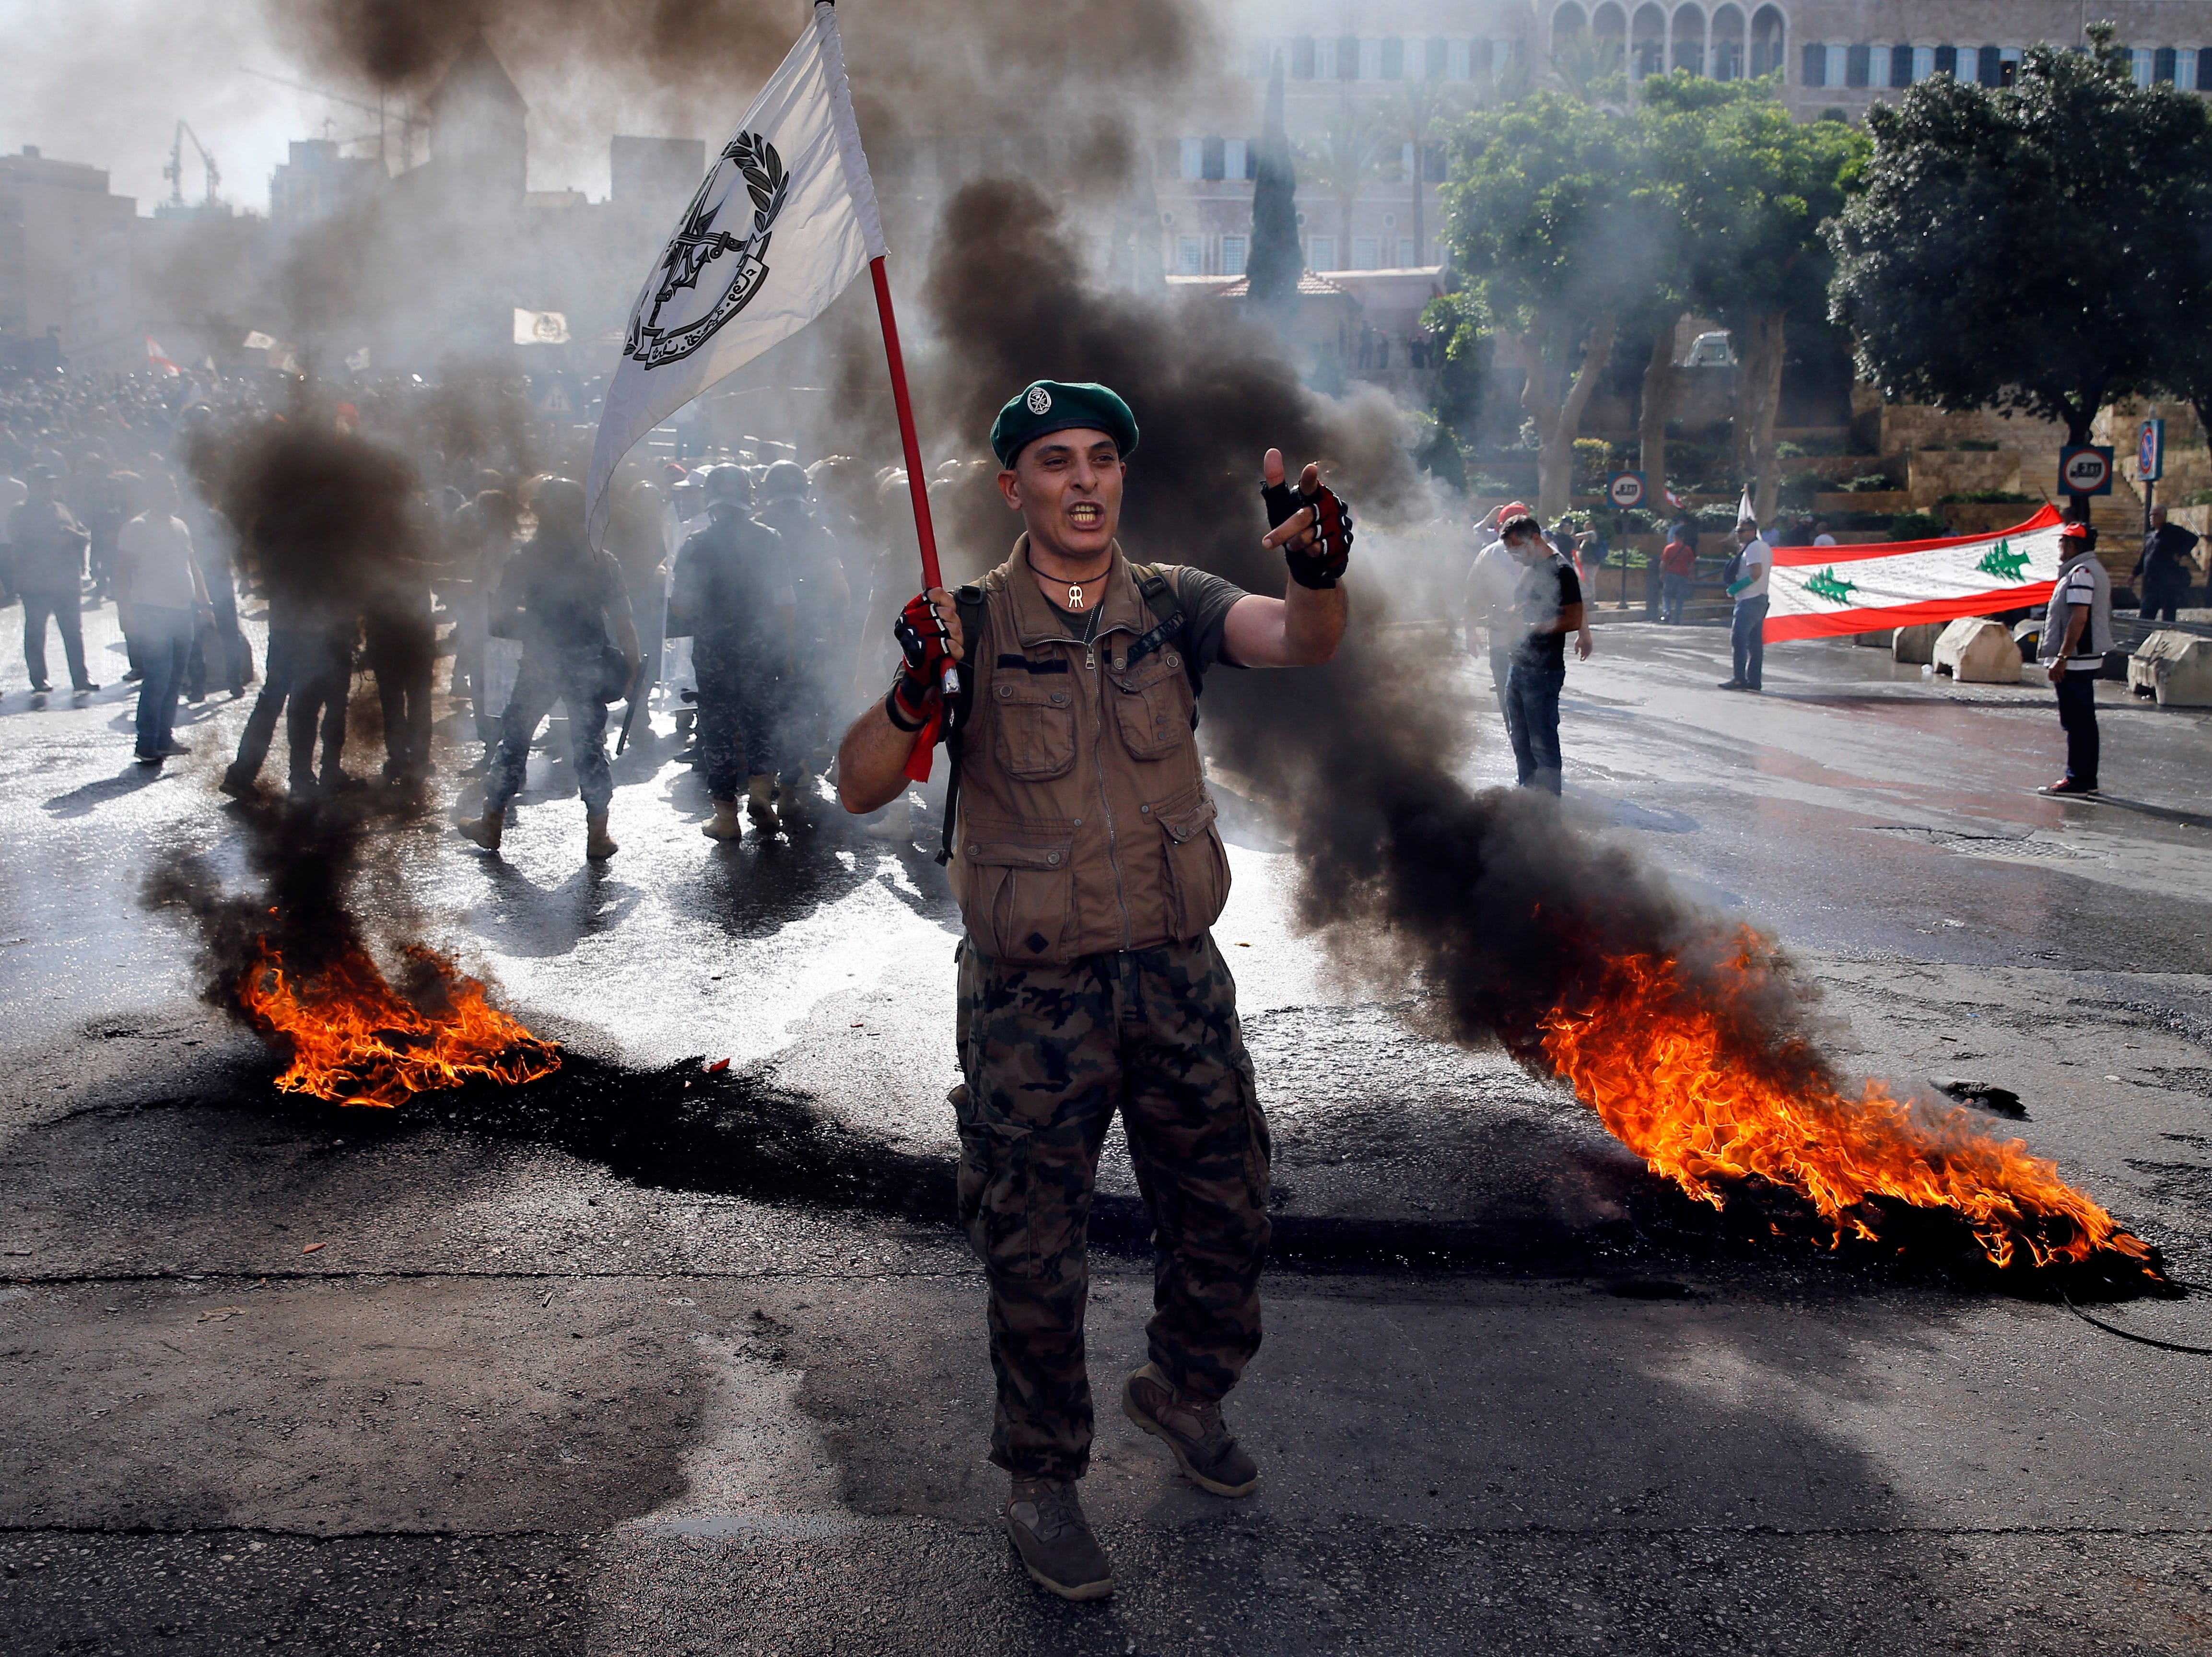 """A retired Lebanese soldier chants slogans while holding an army flag during a protest in Beirut, Lebanon, Monday, May 20, 2019, as the government faces a looming fiscal crisis. Over a hundred protesters gathered Monday in downtown Beirut shouting """"Thieves, thieves!"""" as the Cabinet met for its 16th session to reach agreement on controversial budget cuts."""